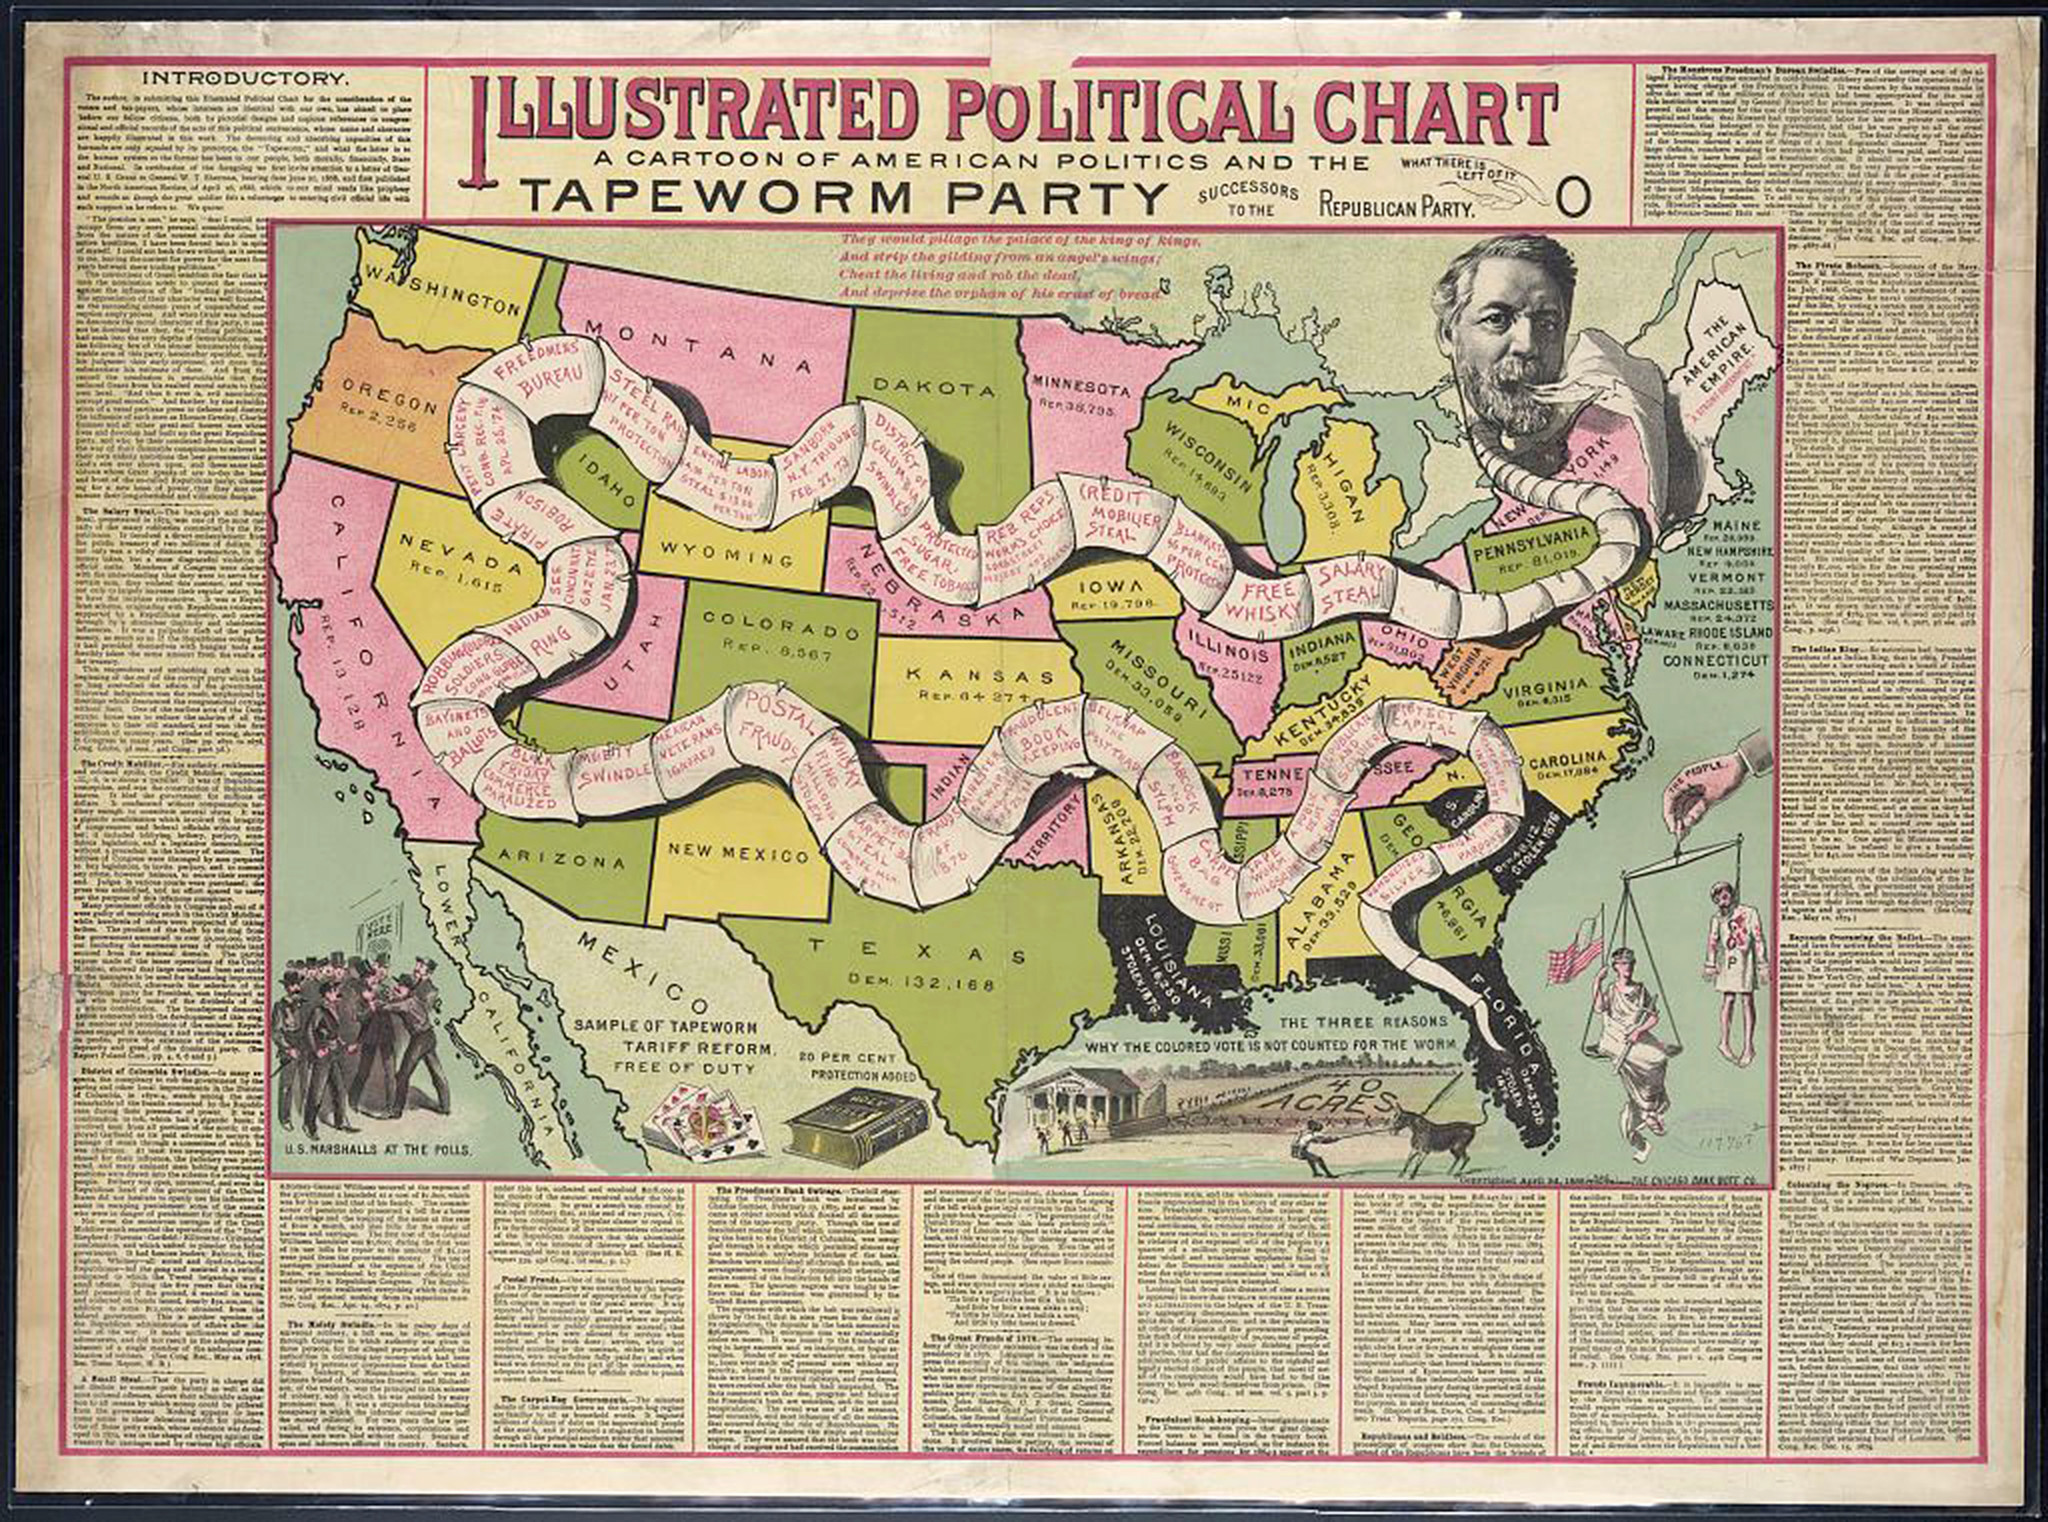 Even before TV, electoral maps were an American obsession. This satirical cartoon from May 1888 depicts the Tapeworm Party, with Republican primary candidate James Blaine as head of the worm.